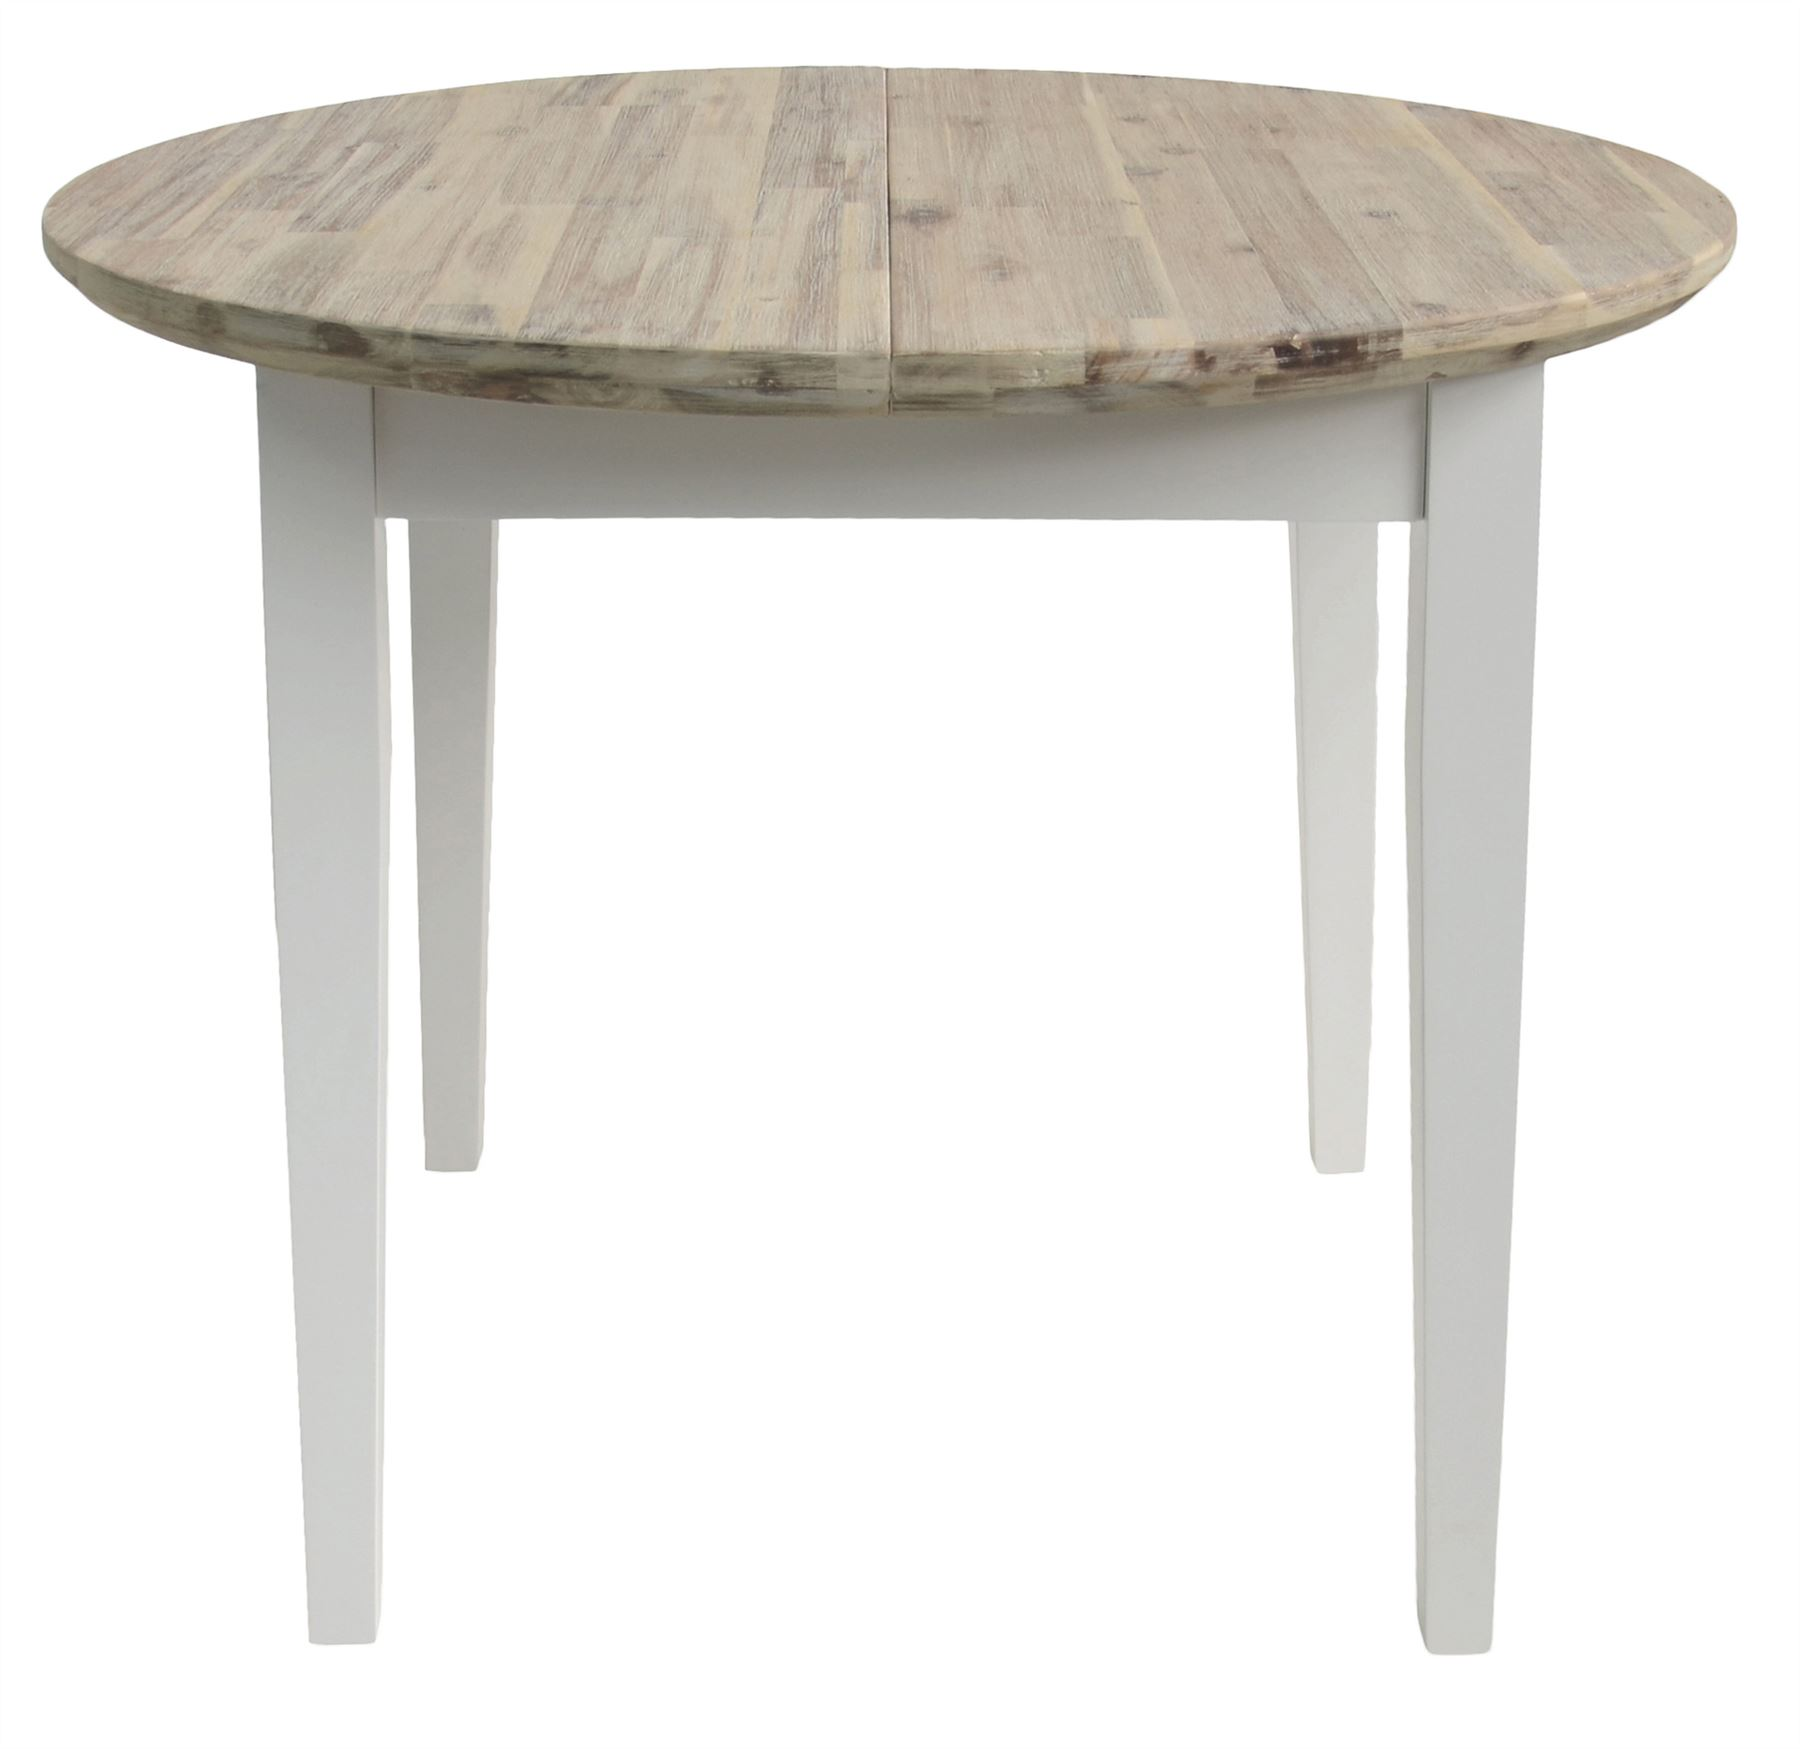 Details About Florence Round Extending Table 92 117cm, Kitchen Dining  Table,brushed Acacia Top